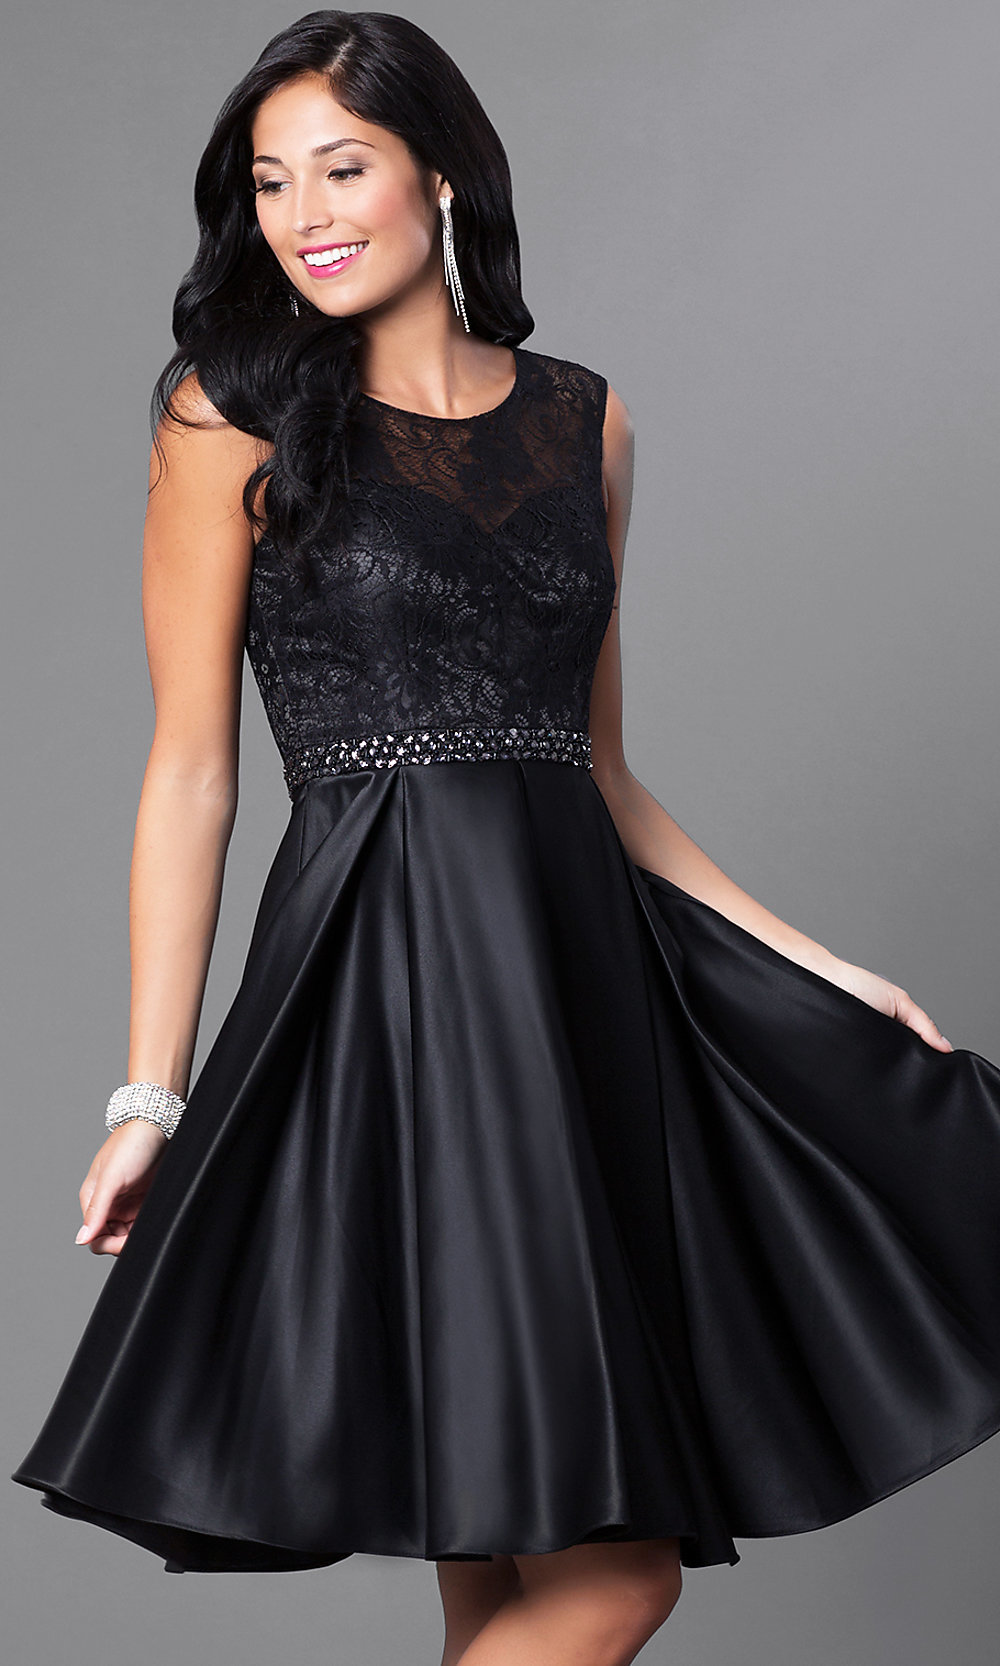 Image of lace-bodice knee-length semi-formal party dress. Style  Tap to  expand 00a58ca28